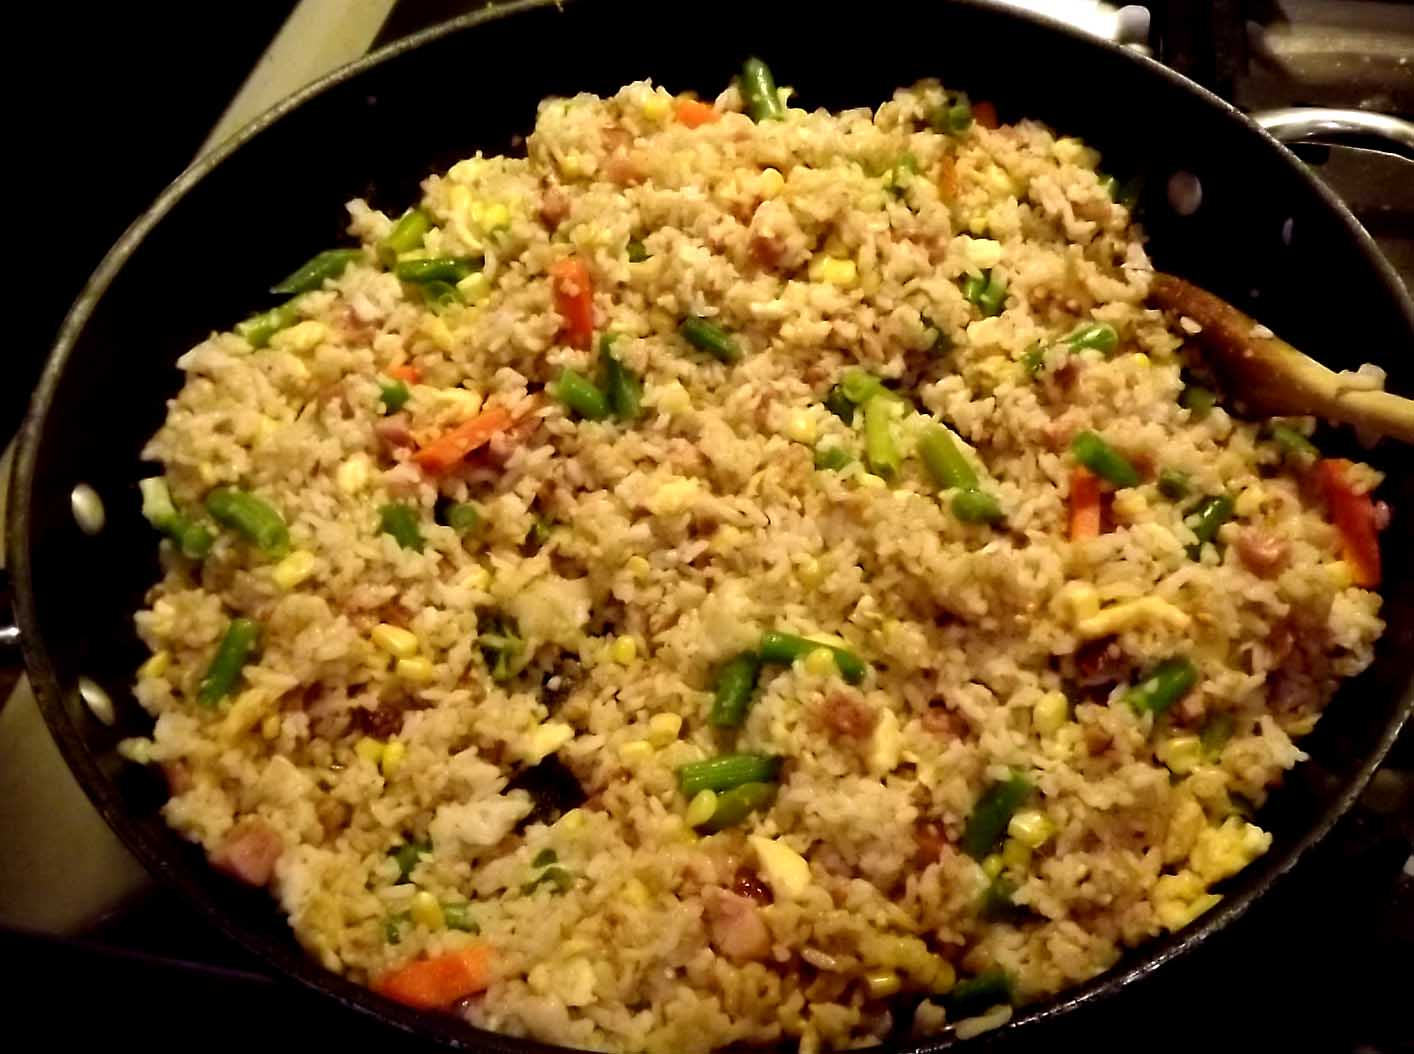 My Jewellery Box: My Special Fried Rice